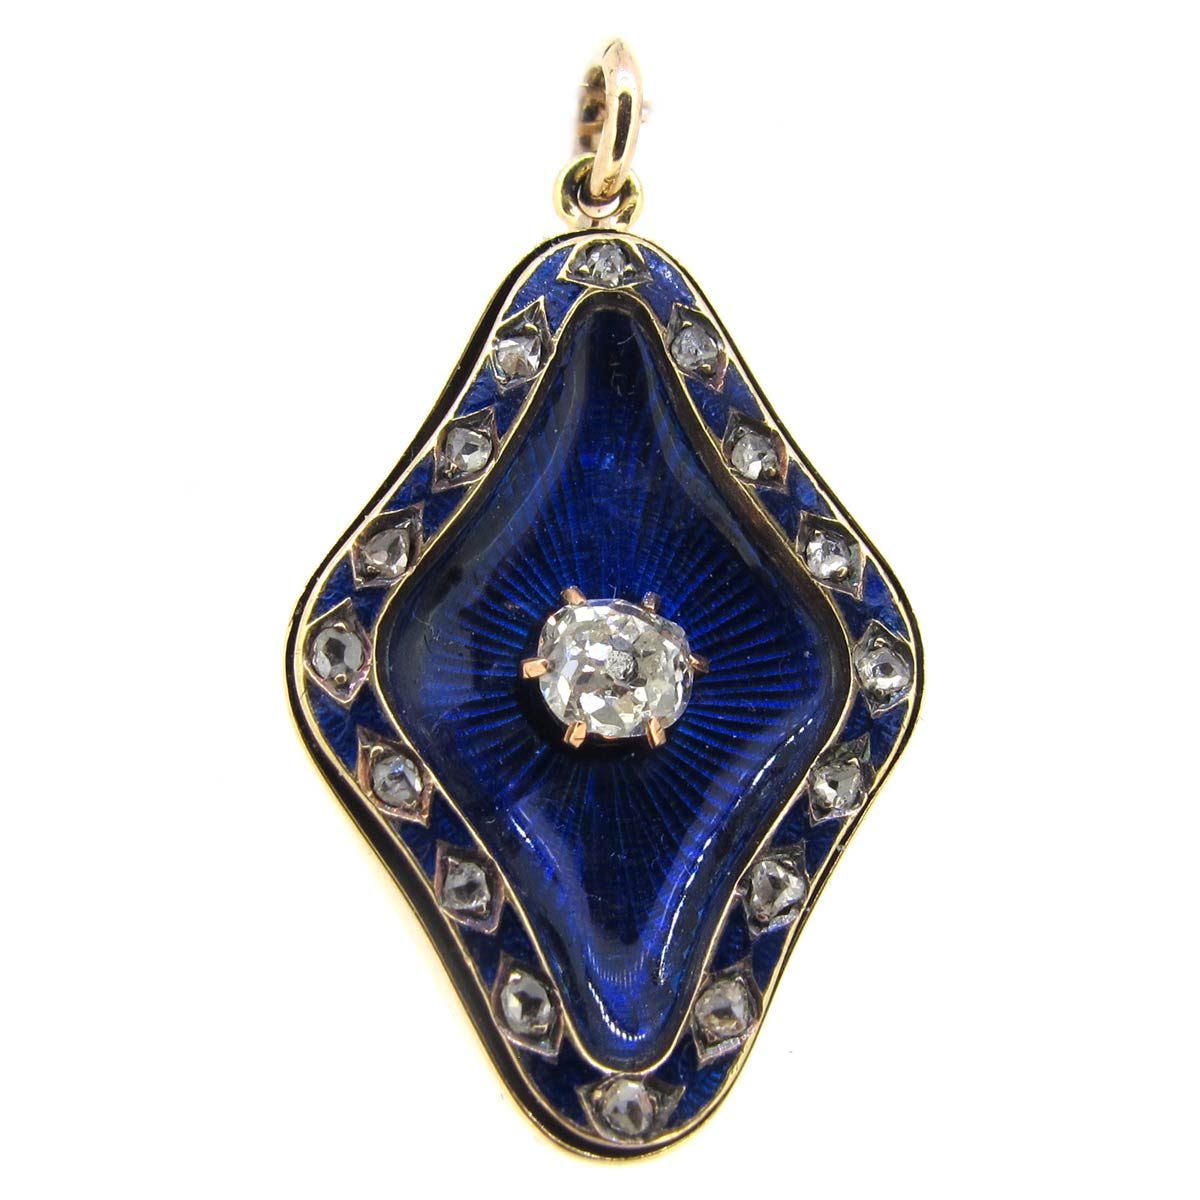 Antique Enamel & Diamond Pendant